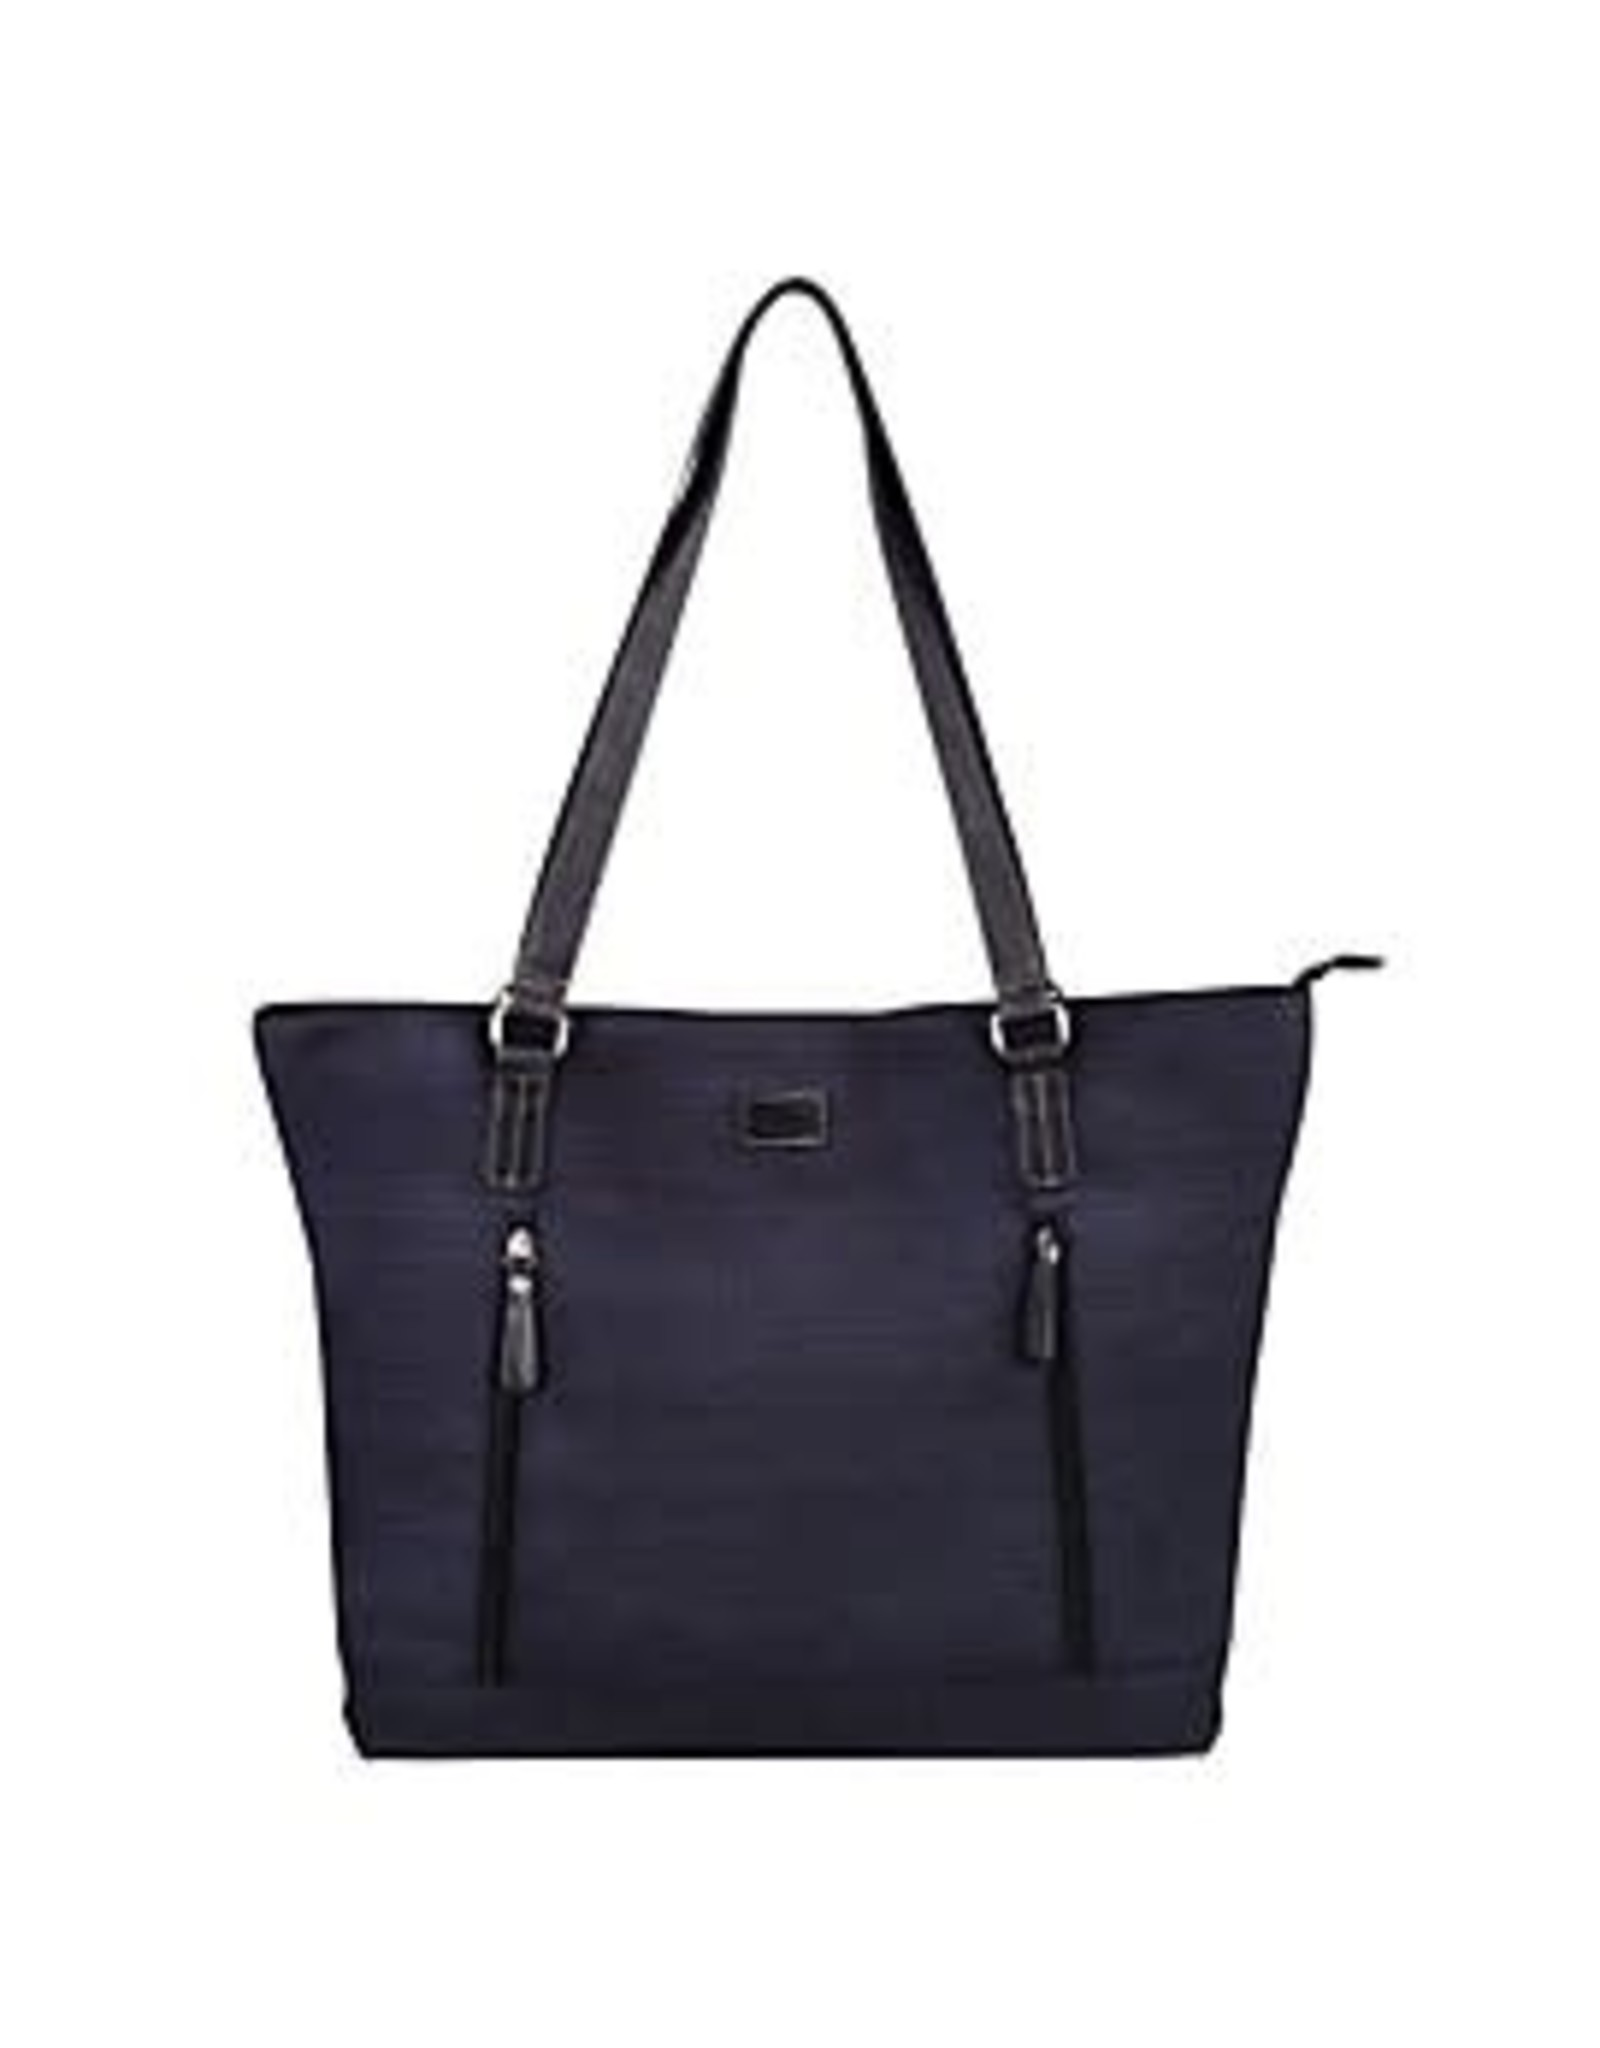 Roots BUSINESS TOTE-ROOTS SATCHEL, LADIES, GREY